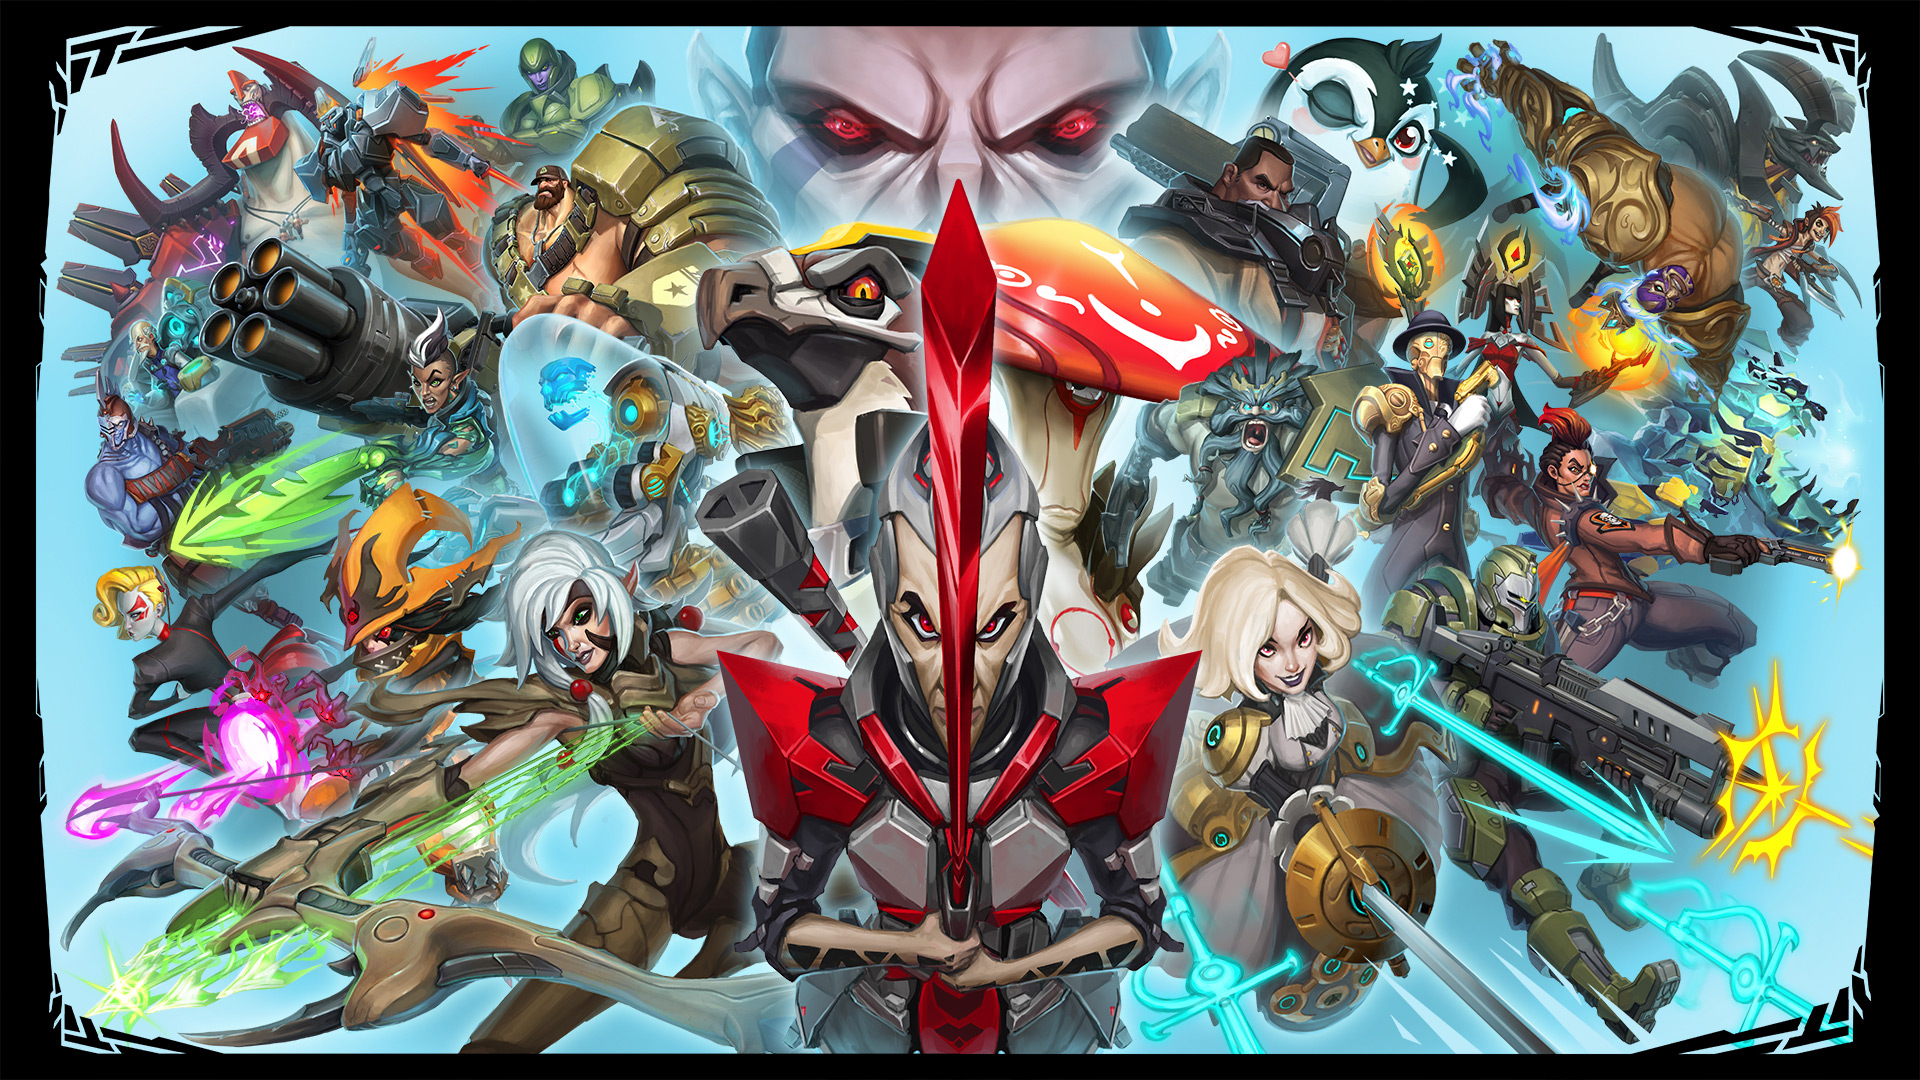 As expected, Battleborn is getting microtransactions screenshot